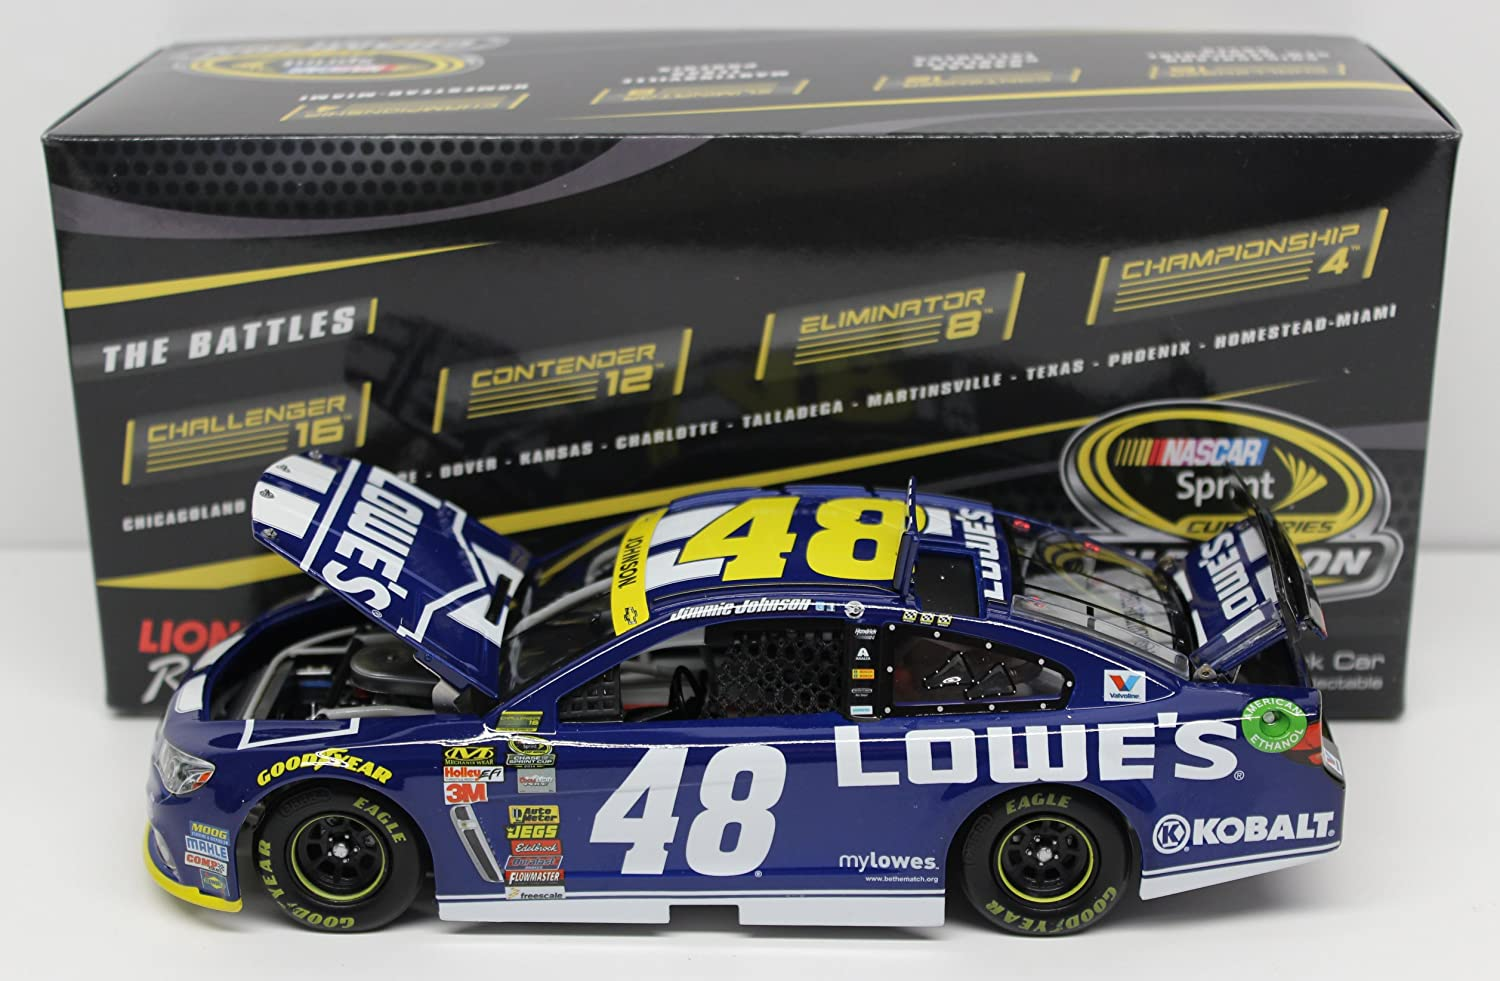 B00NC7KYHW Action Racing Jimmie Johnson 2014 Chase Lowes 1:24 Nascar Diecast 81uH9Xz4RfL.SL1500_